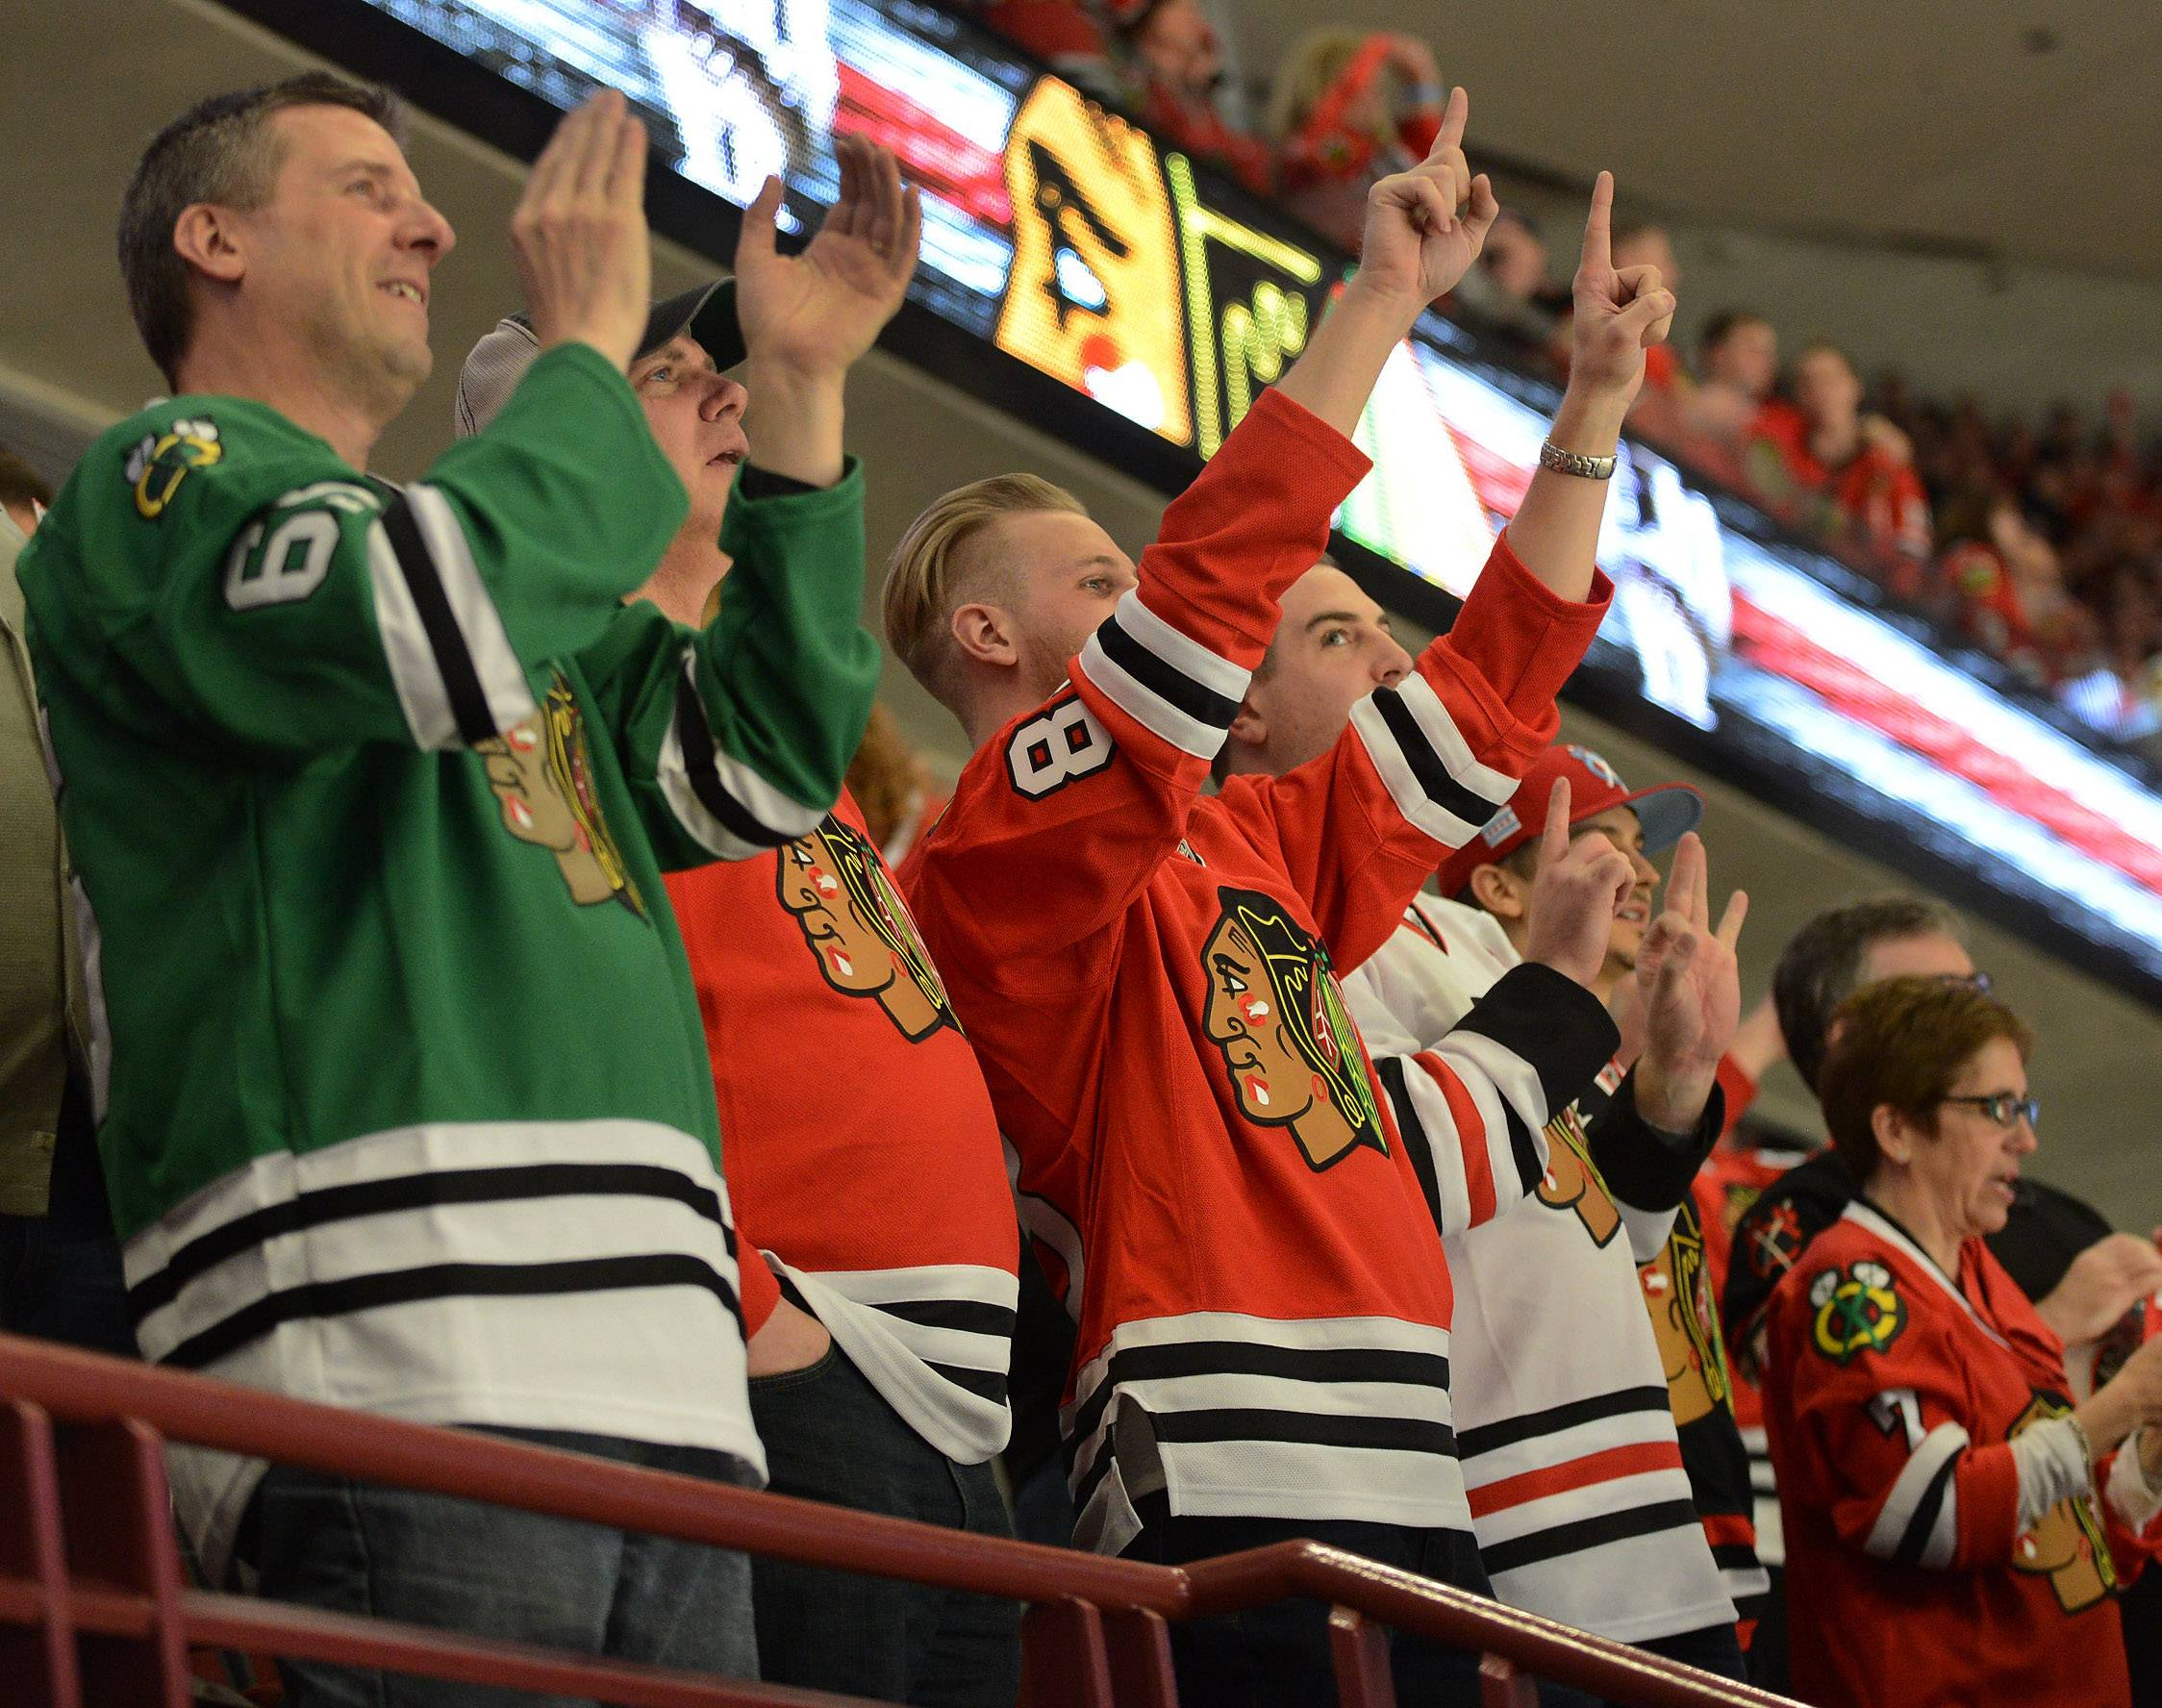 Last season, the Chicago Blackhawks led the NHL in attendance again, averaging 21,751 per game at the United Center.